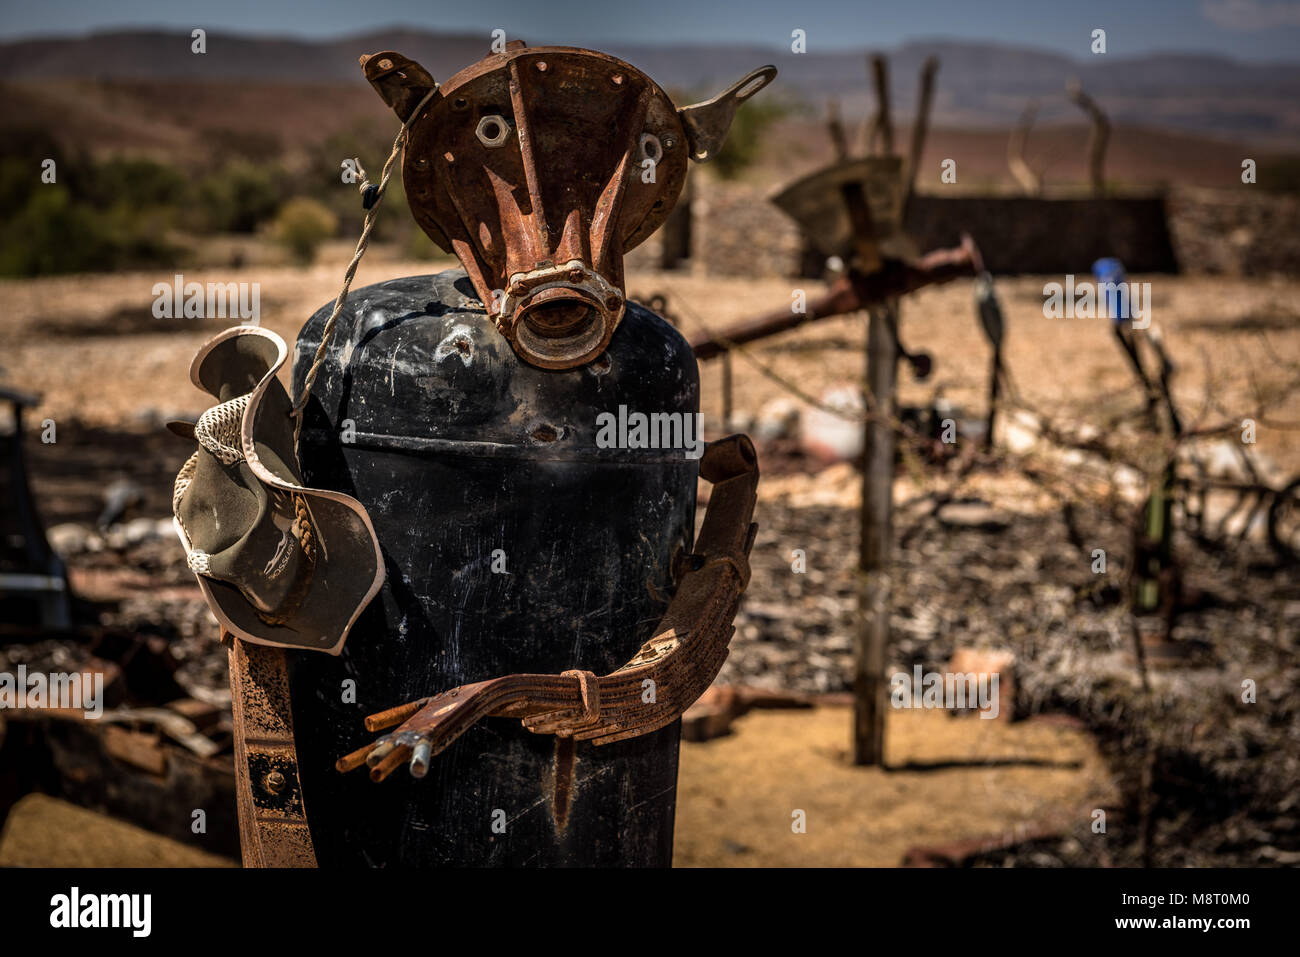 Ein Metall Skulptur Garten Am Tsauchab River Camp In Namibia